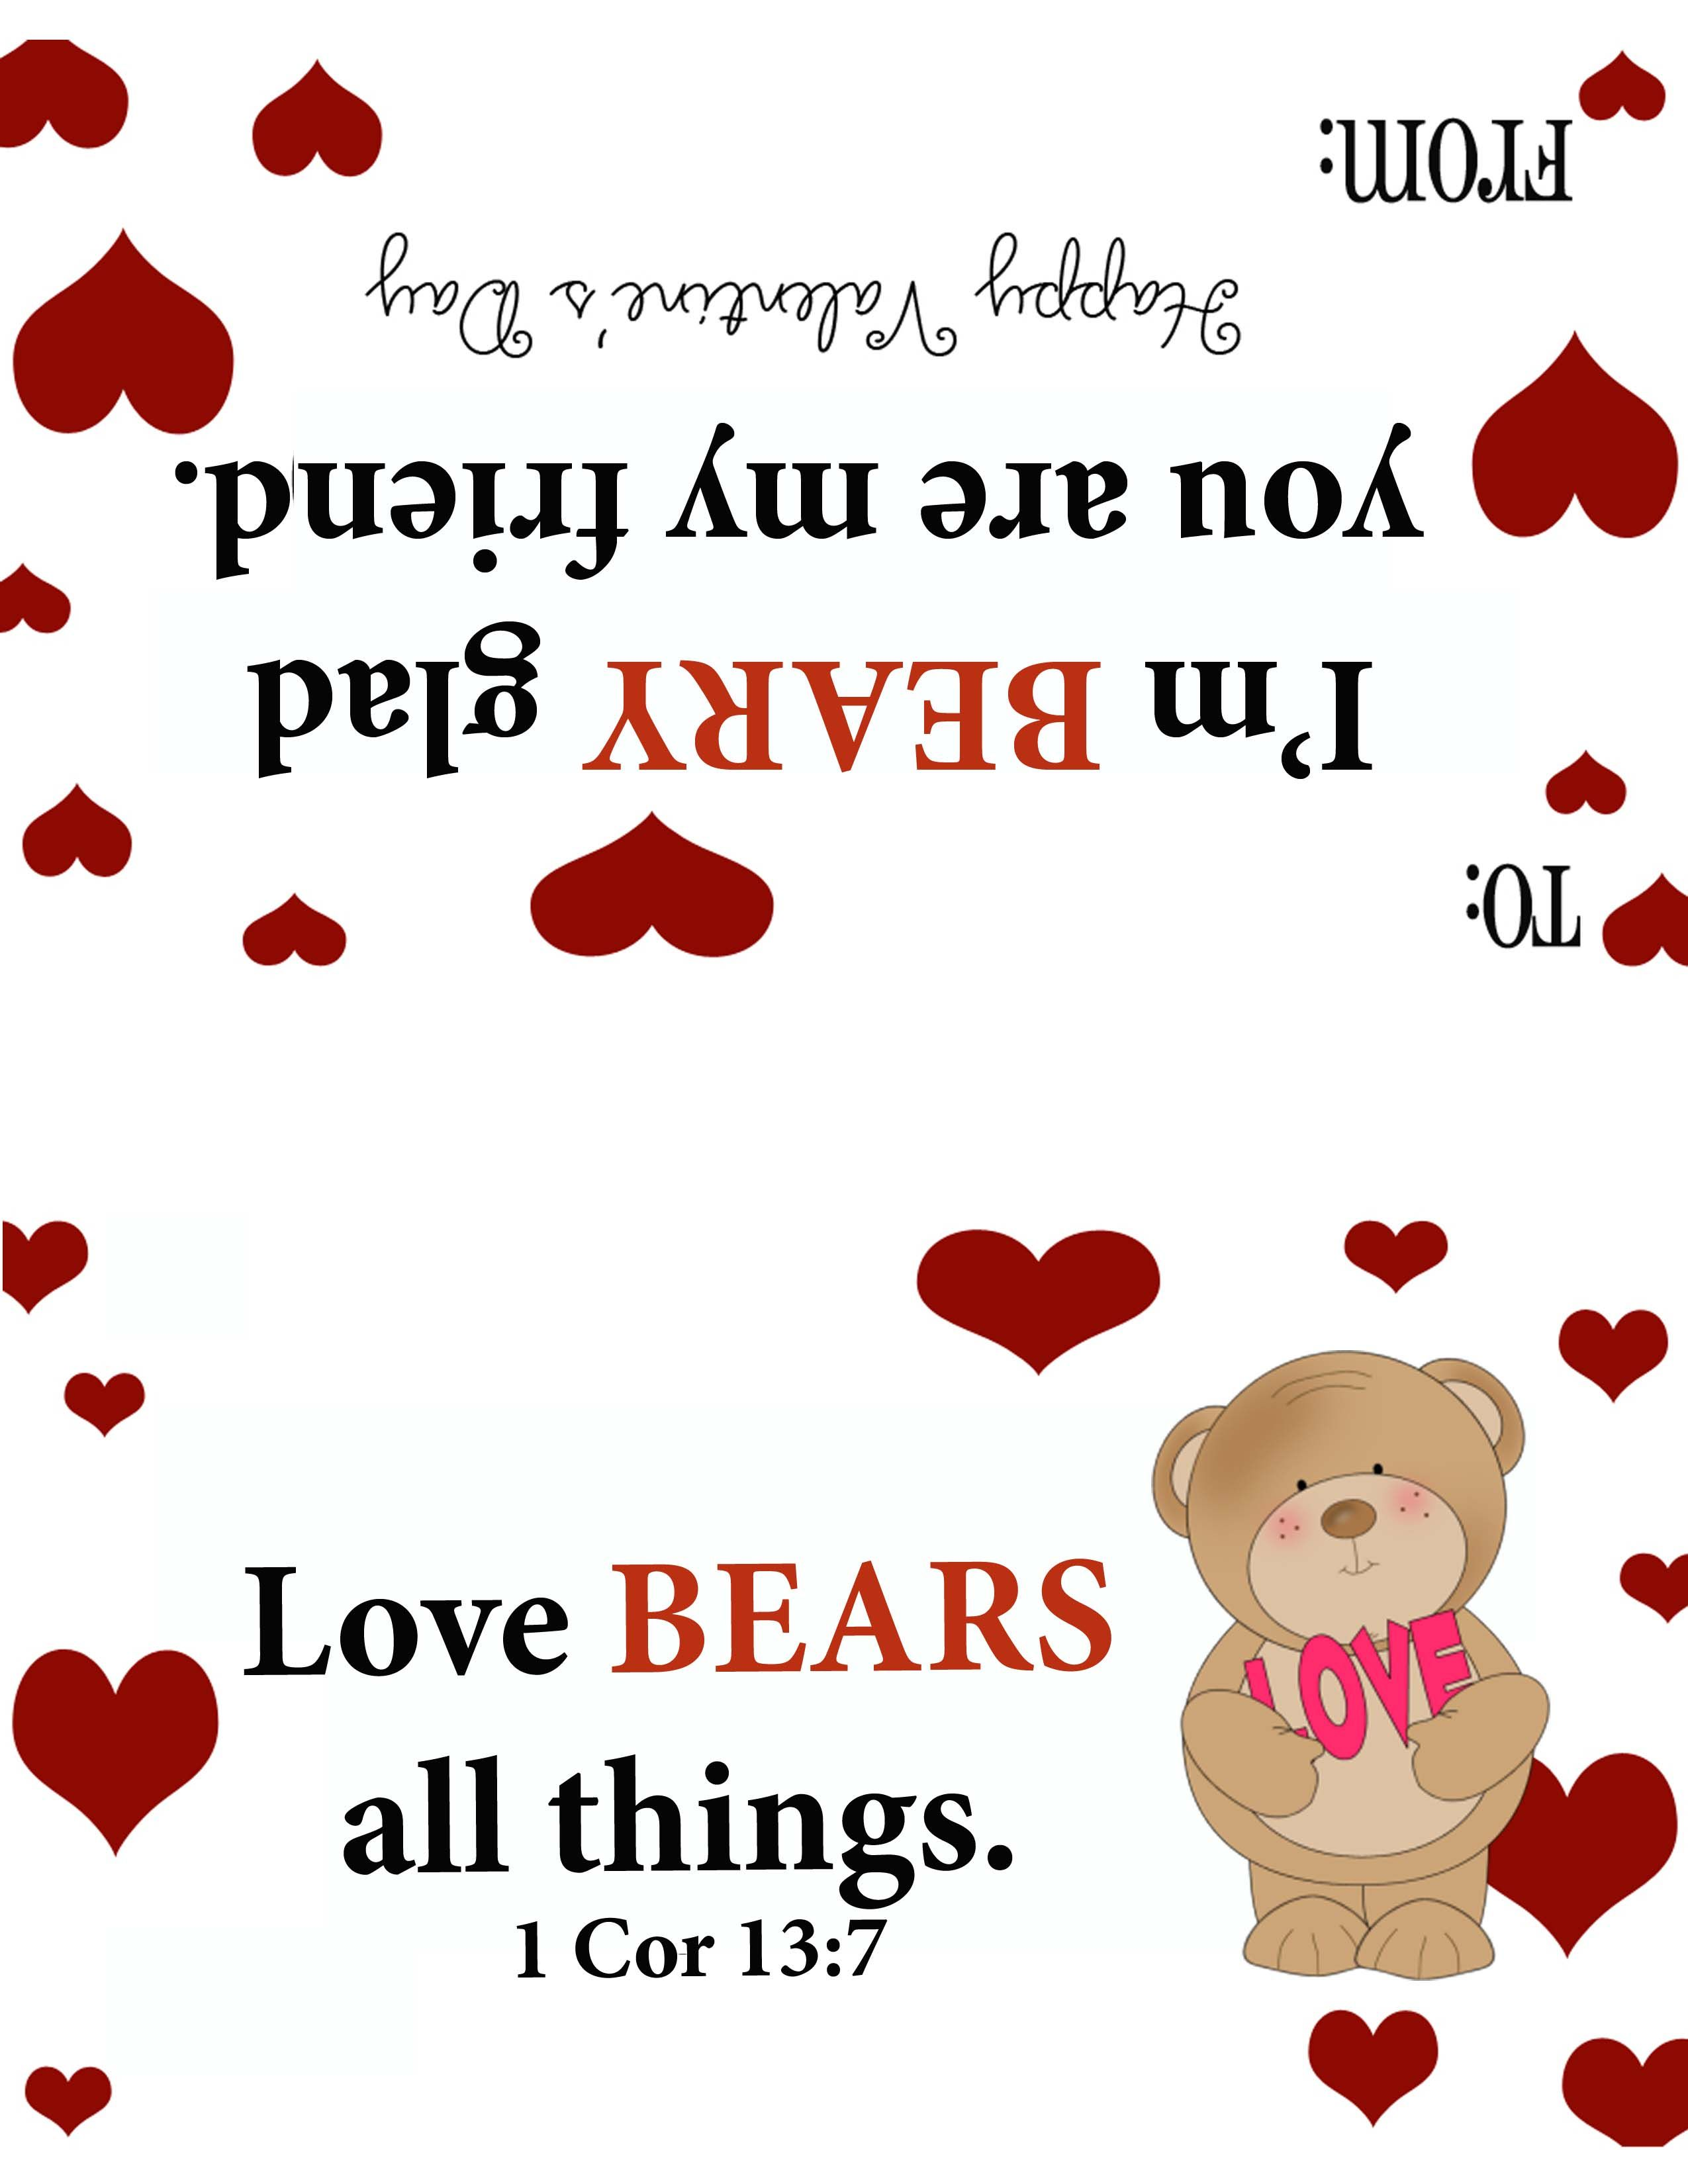 Valentine Print Out To Attach To Teddy Grahams Or Gummy